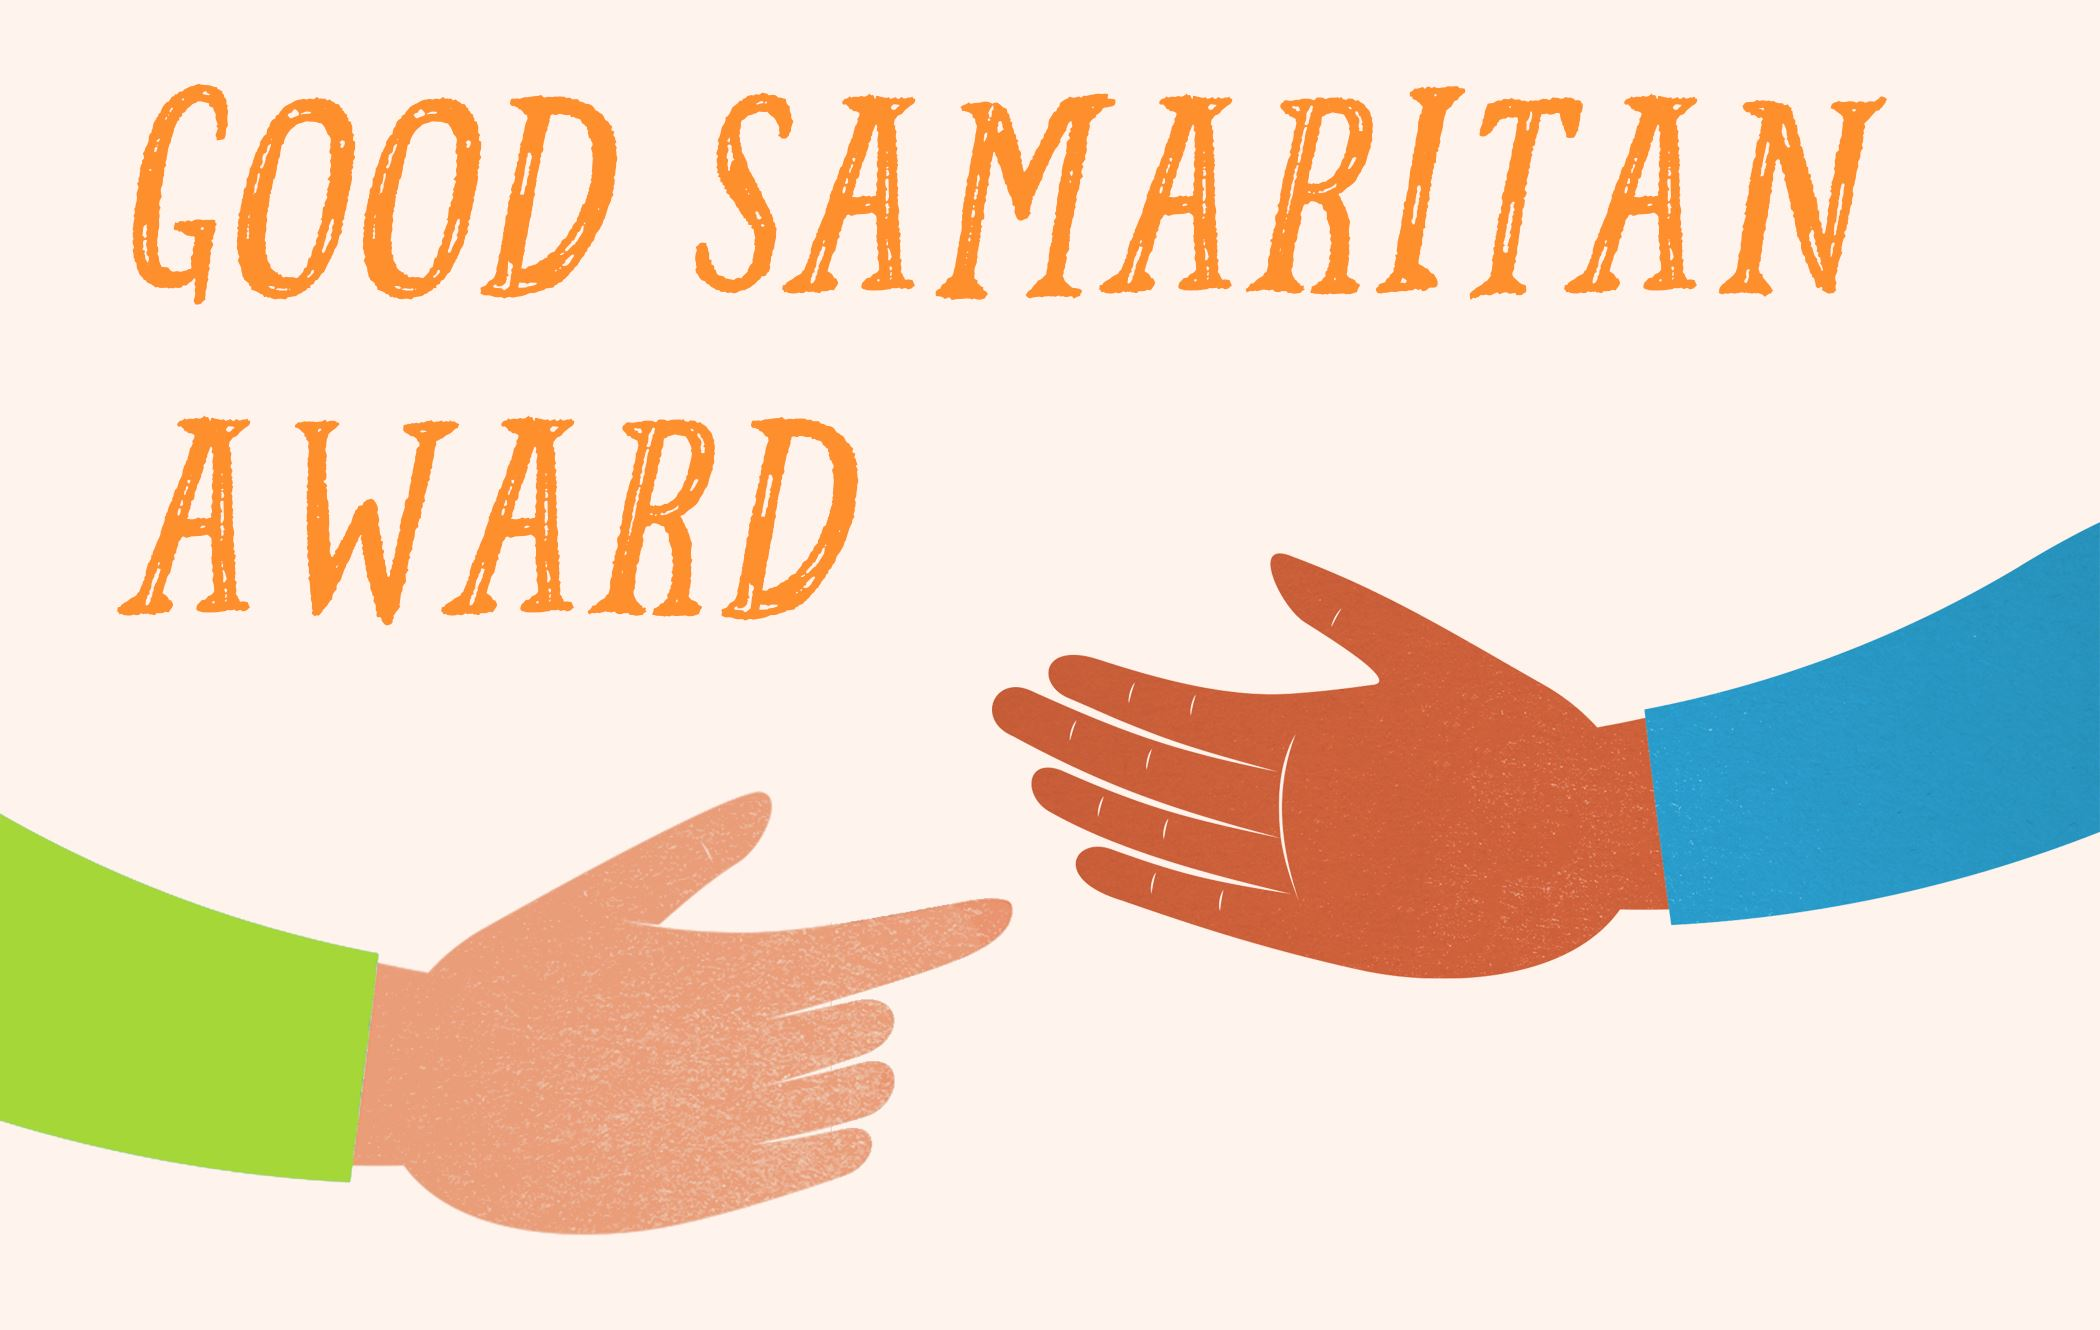 Good Samaritan Award